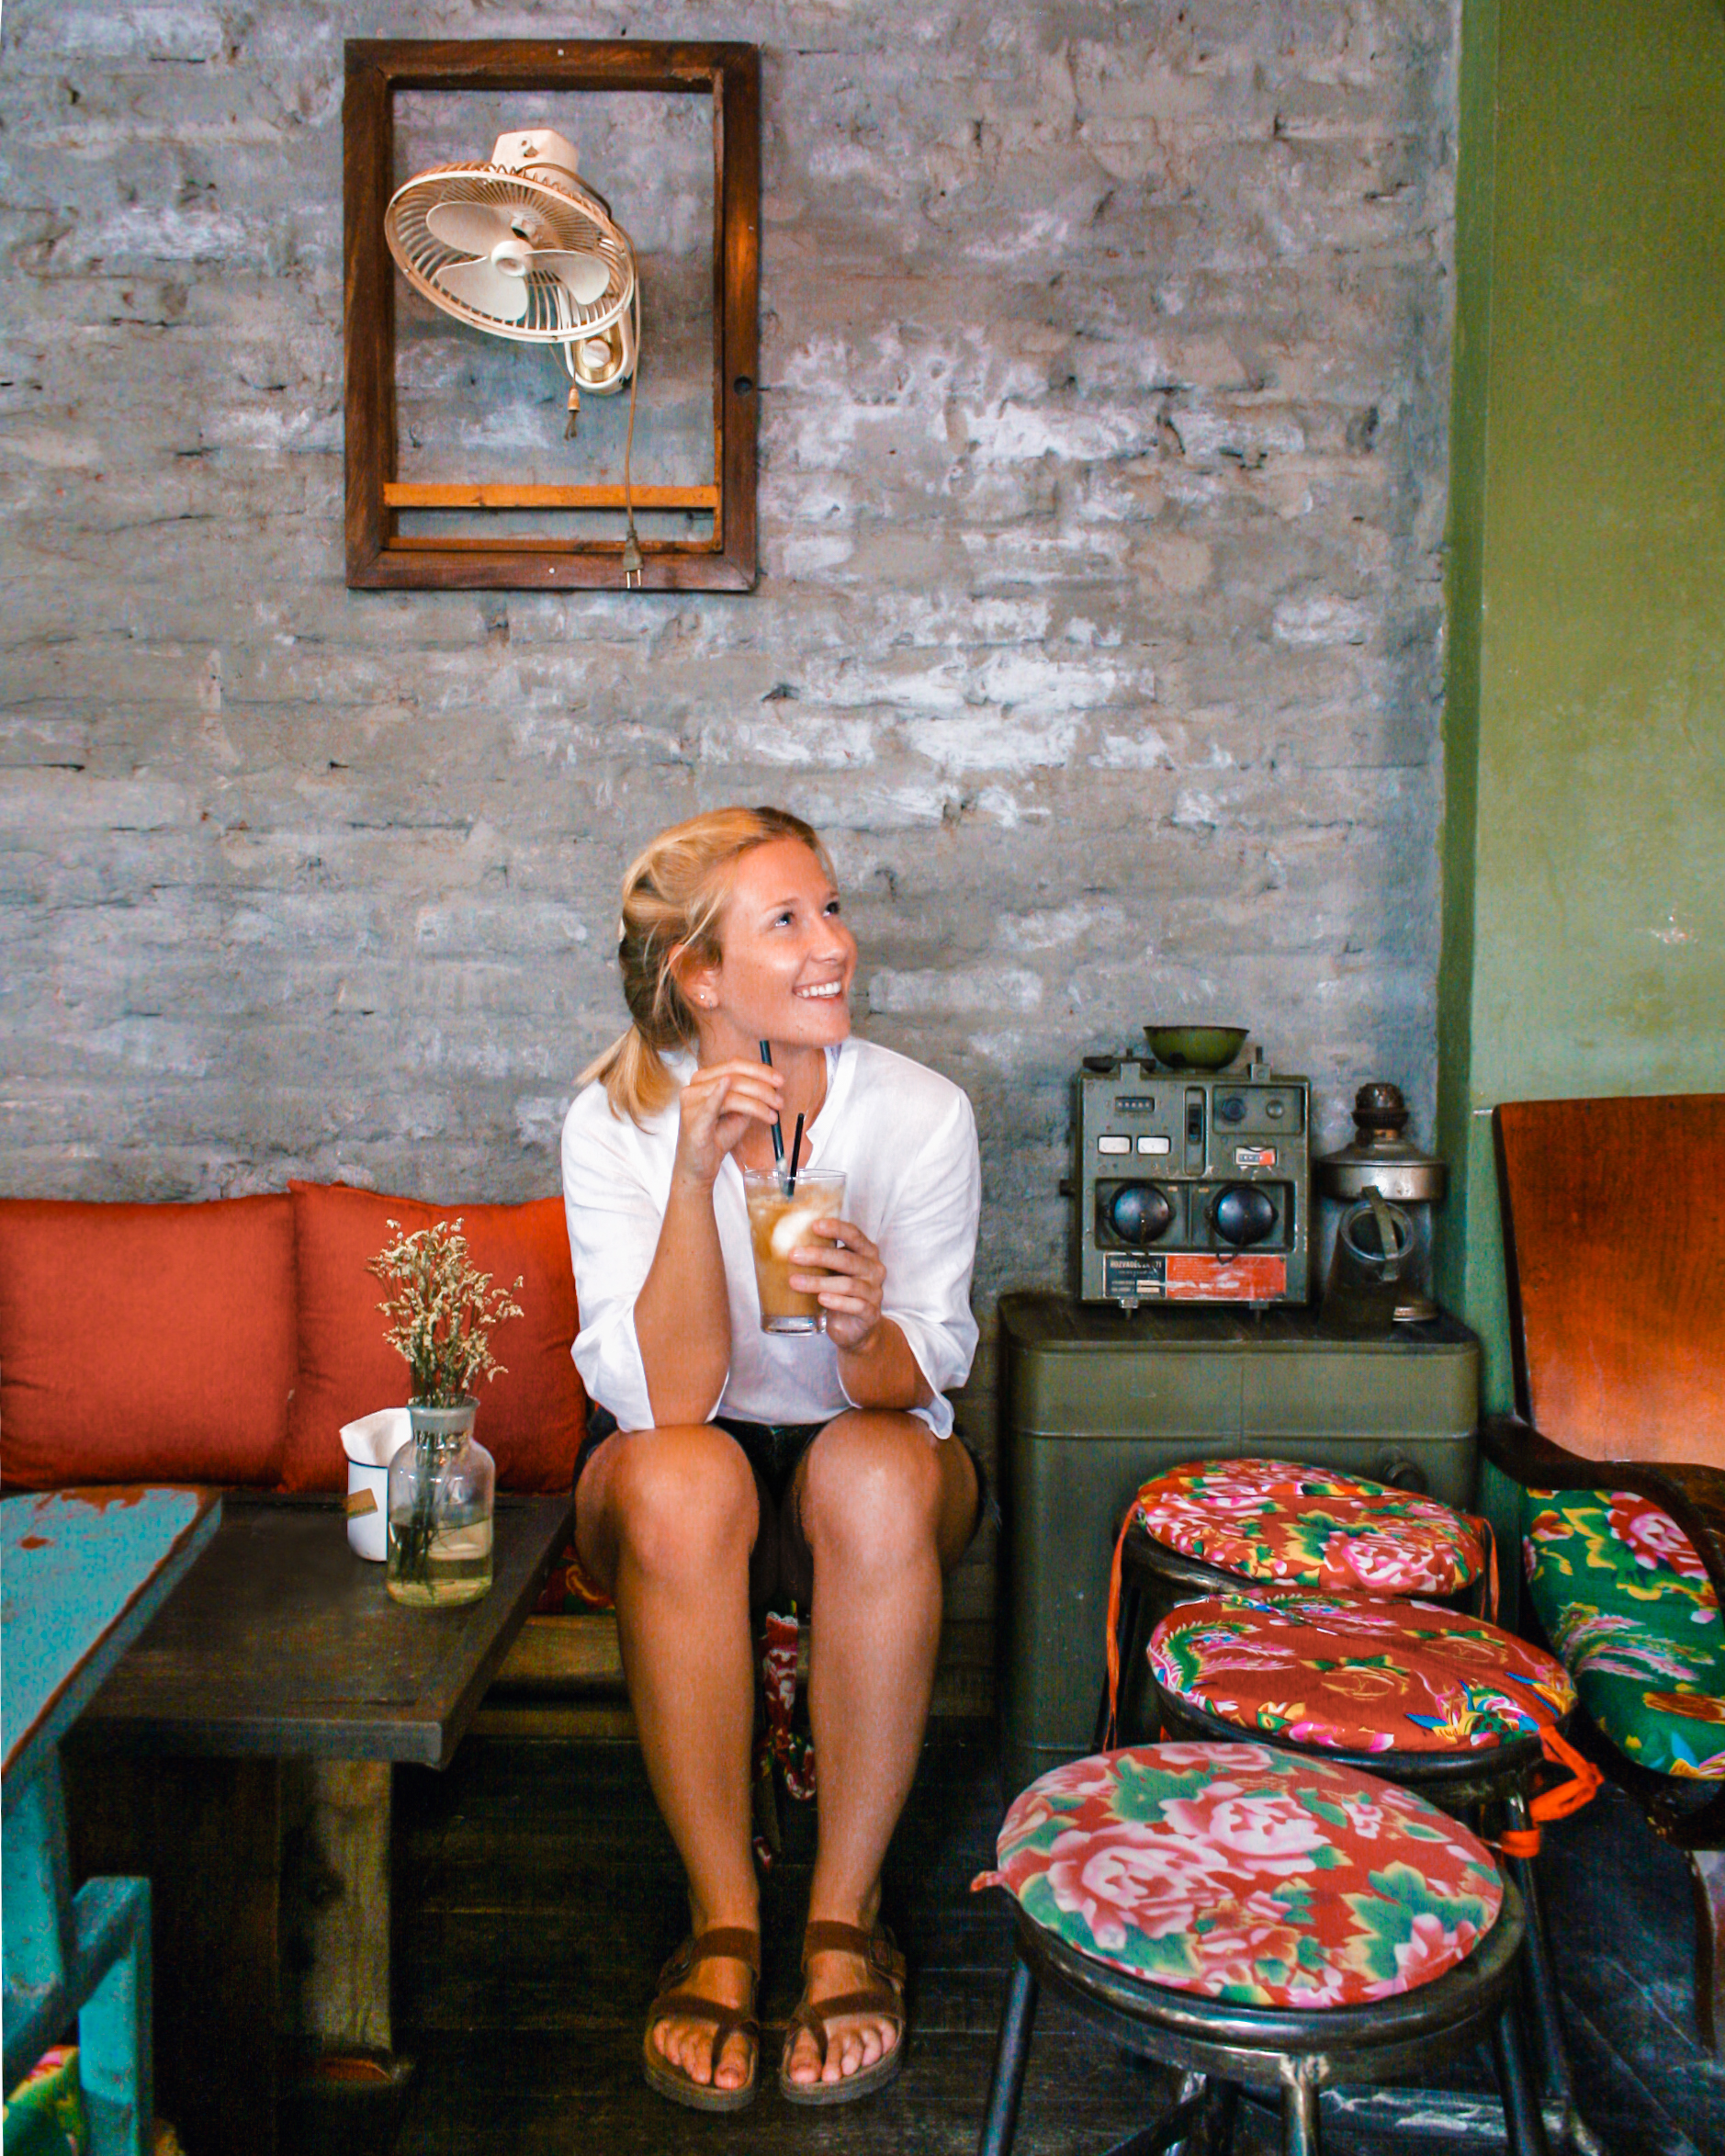 Kelsey Madison enjoys Vietnamese coffee at a coffee shop in Hanoi. Photo: milesofsmiles.co